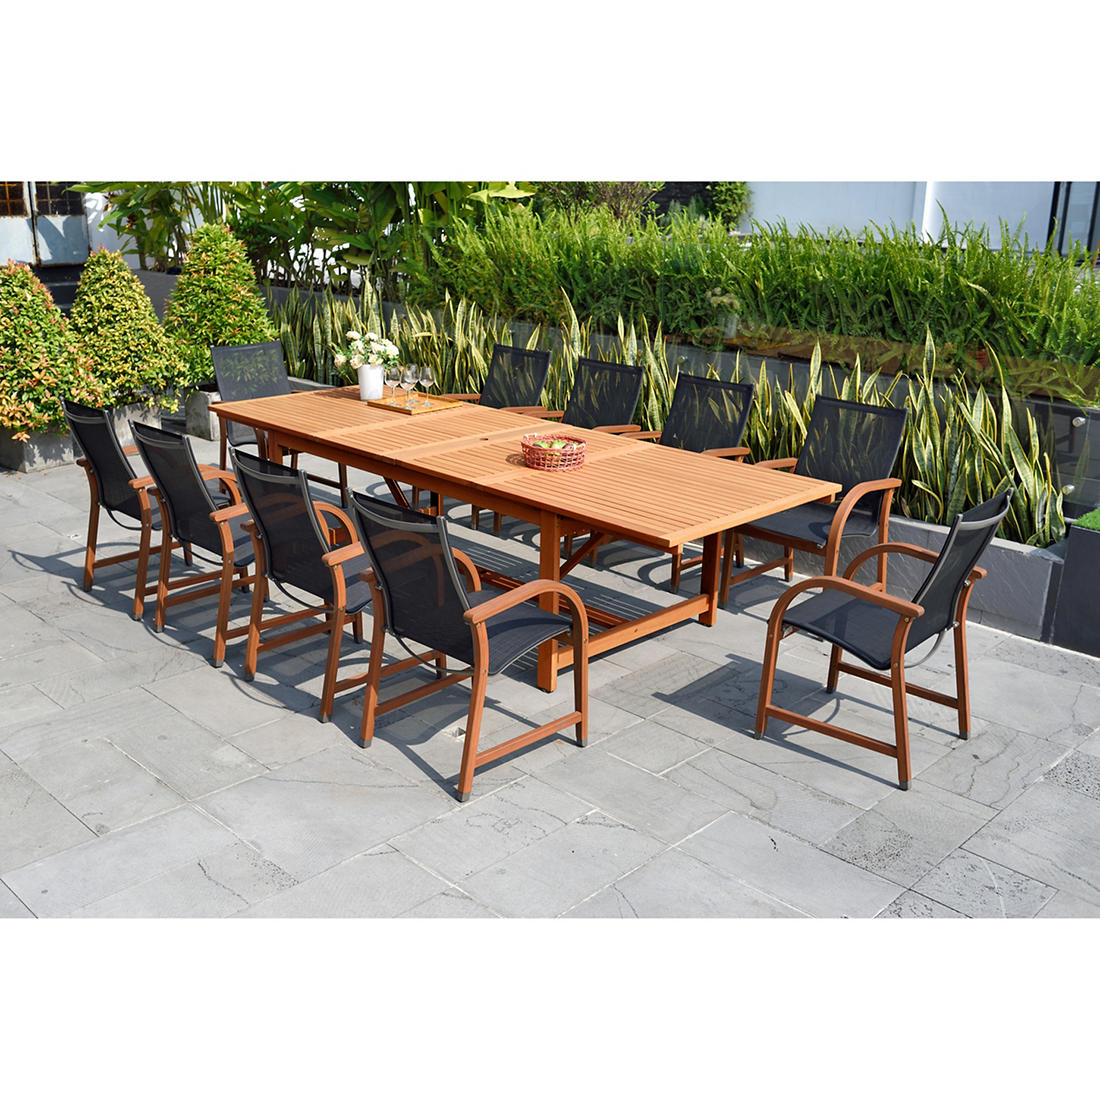 Swell Amazonia Rinehart 11 Pc Eucalyptus Extendable Rectangular Patio Dining Set Natural Black Inzonedesignstudio Interior Chair Design Inzonedesignstudiocom